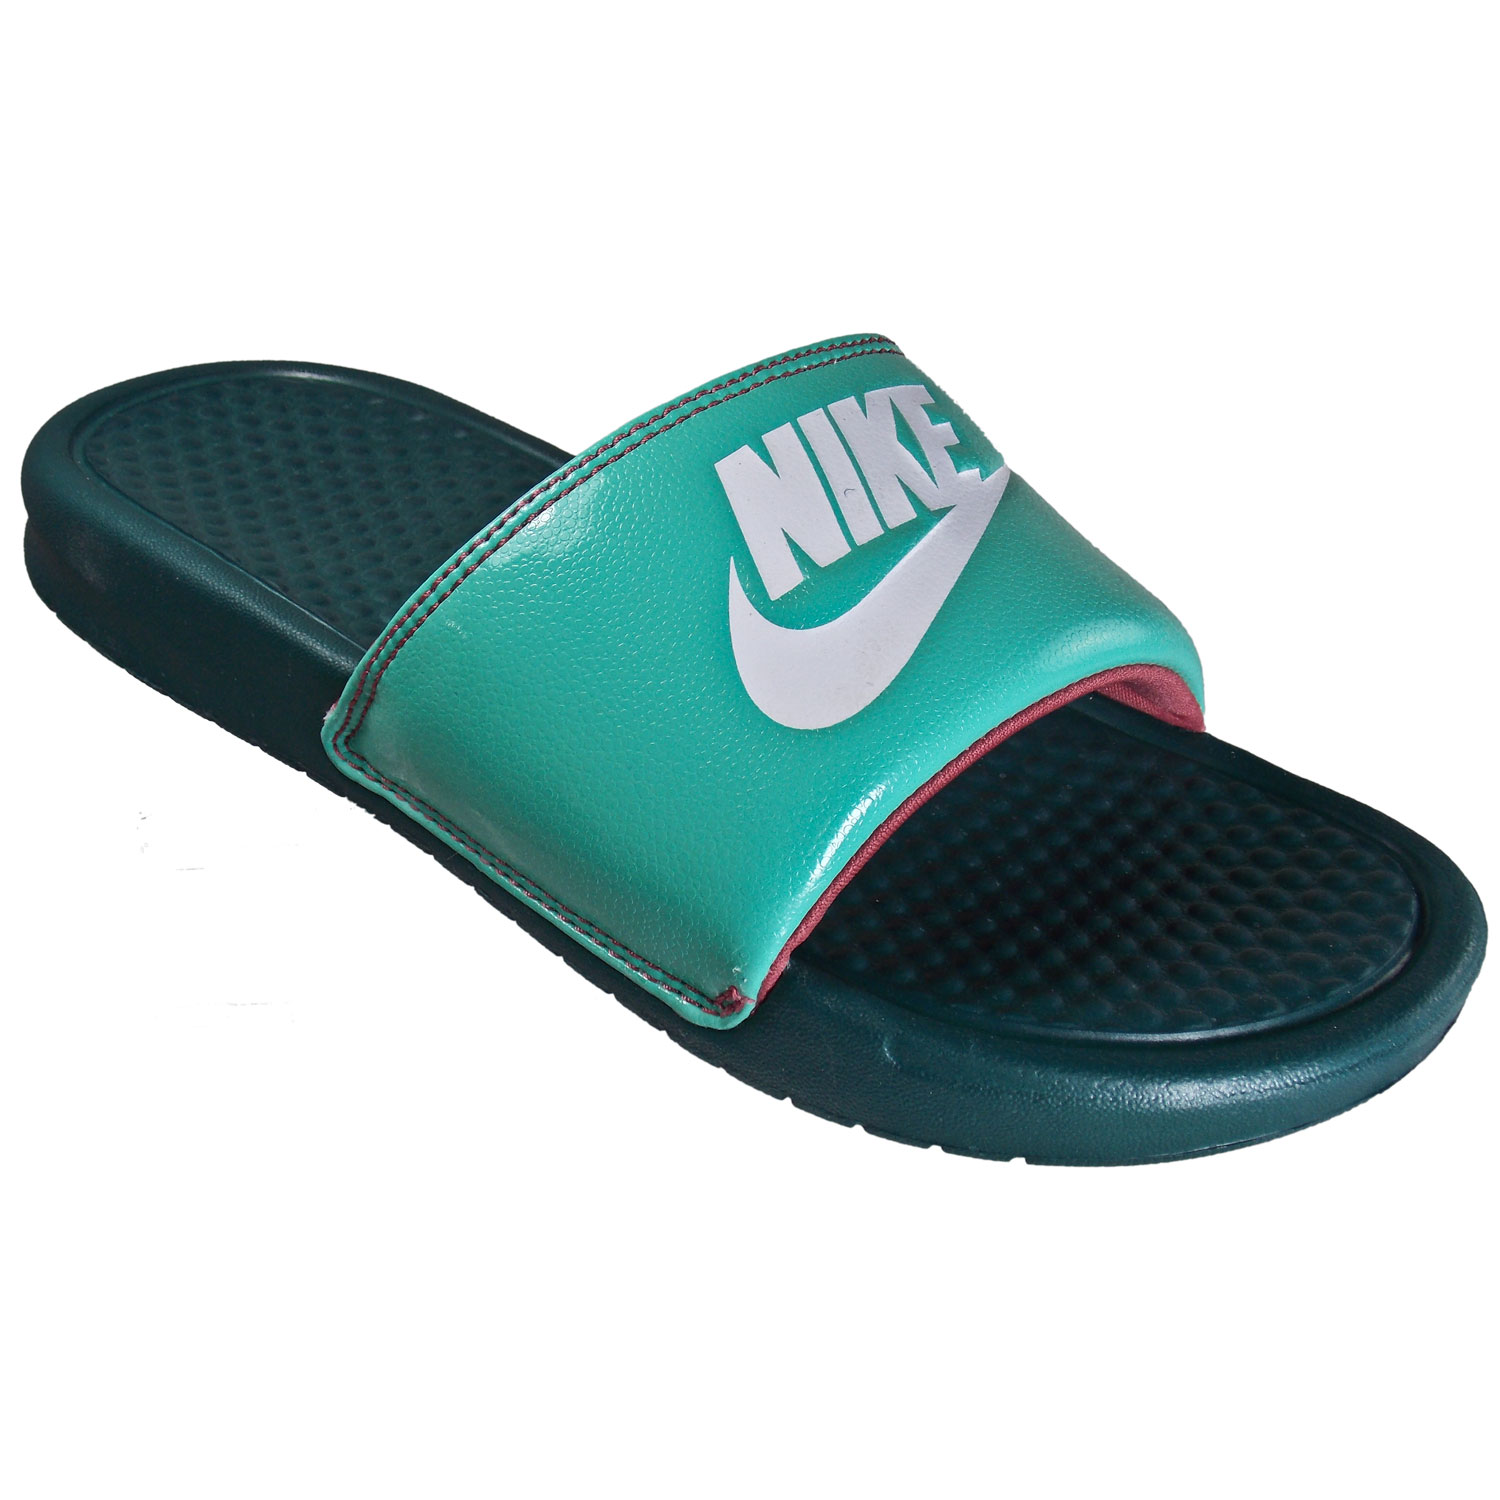 Excellent Right Now At Eastbay Online, Get Mens And Womens Slides For As Low As $1650 In Some Styles The Shower Slides And Benassi Styles Are All Under $19 Dollars In A Variety Of Colors Plus, Shipping Is